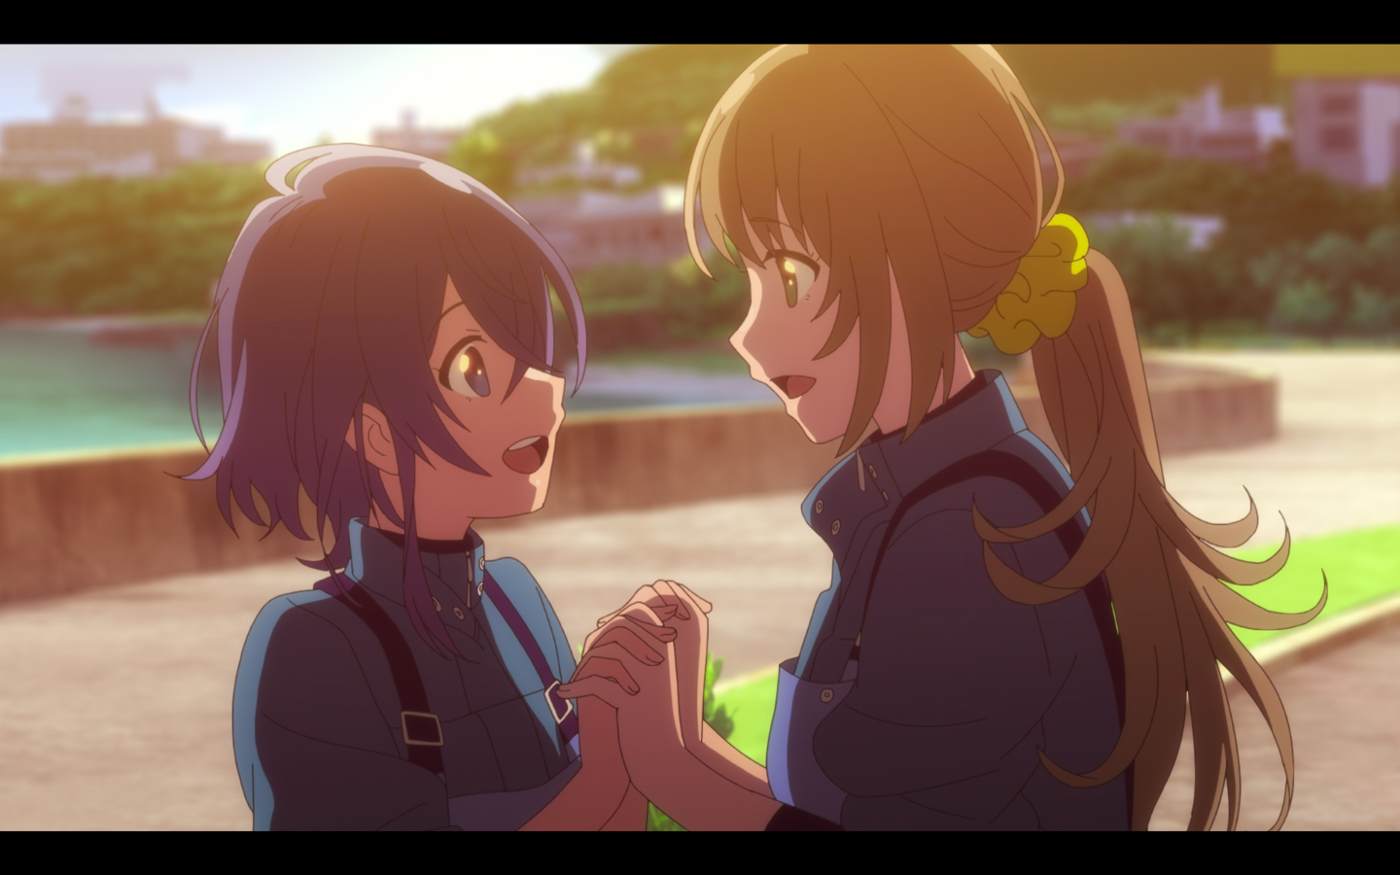 Kukuru and Fuuka holding hands and looking at each other, excited that Fuuka is allowed to stay.